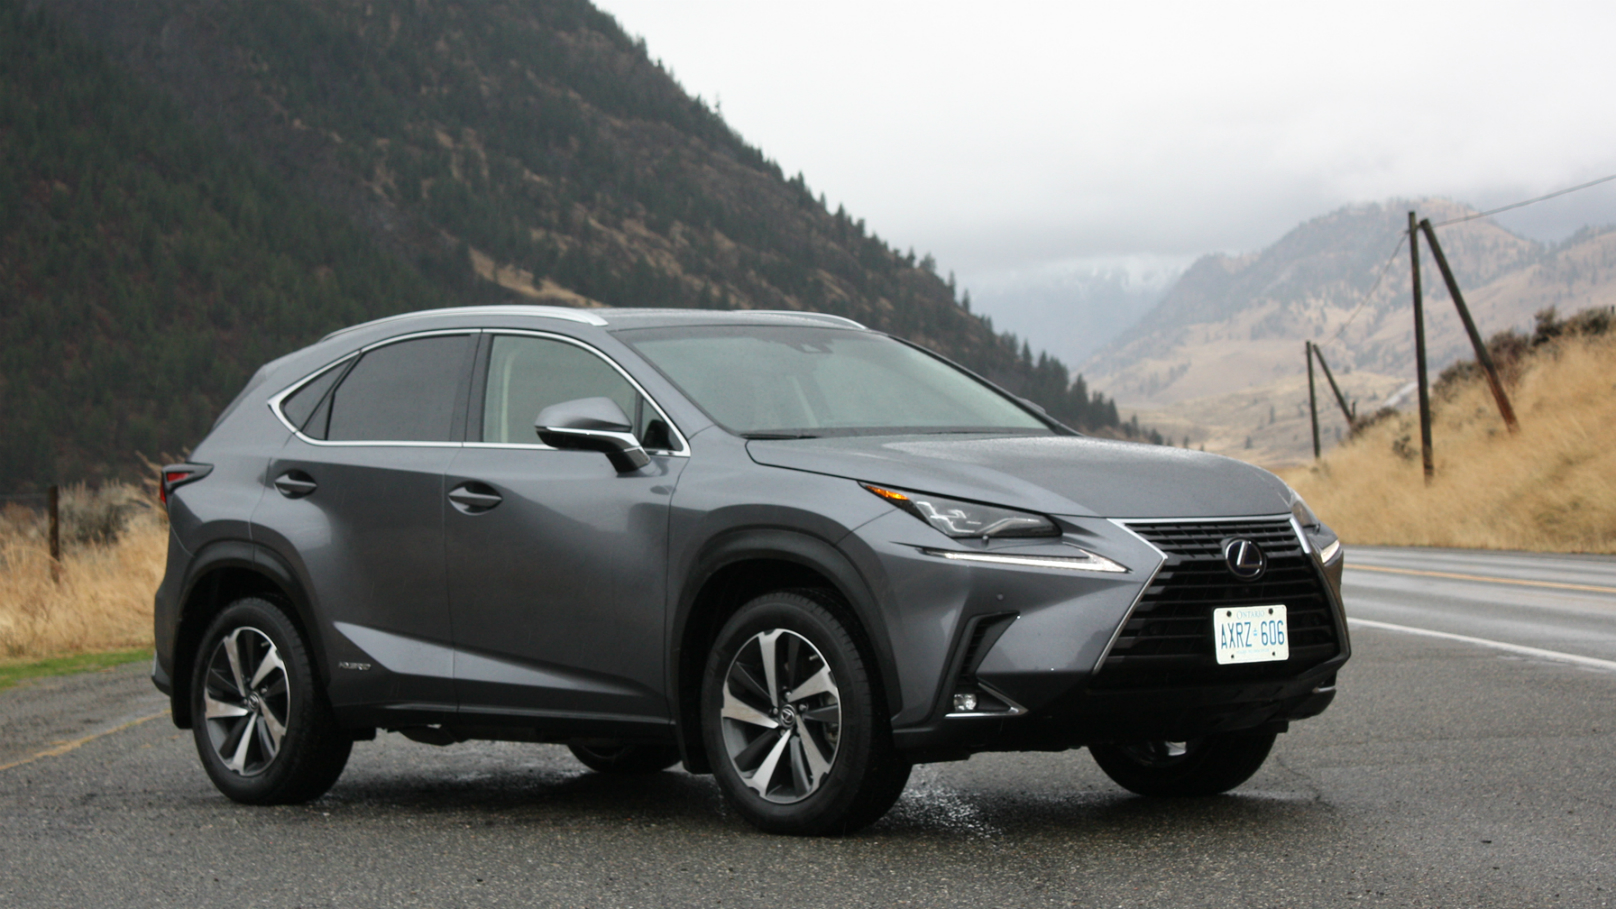 2018 Lexus NX300 Review